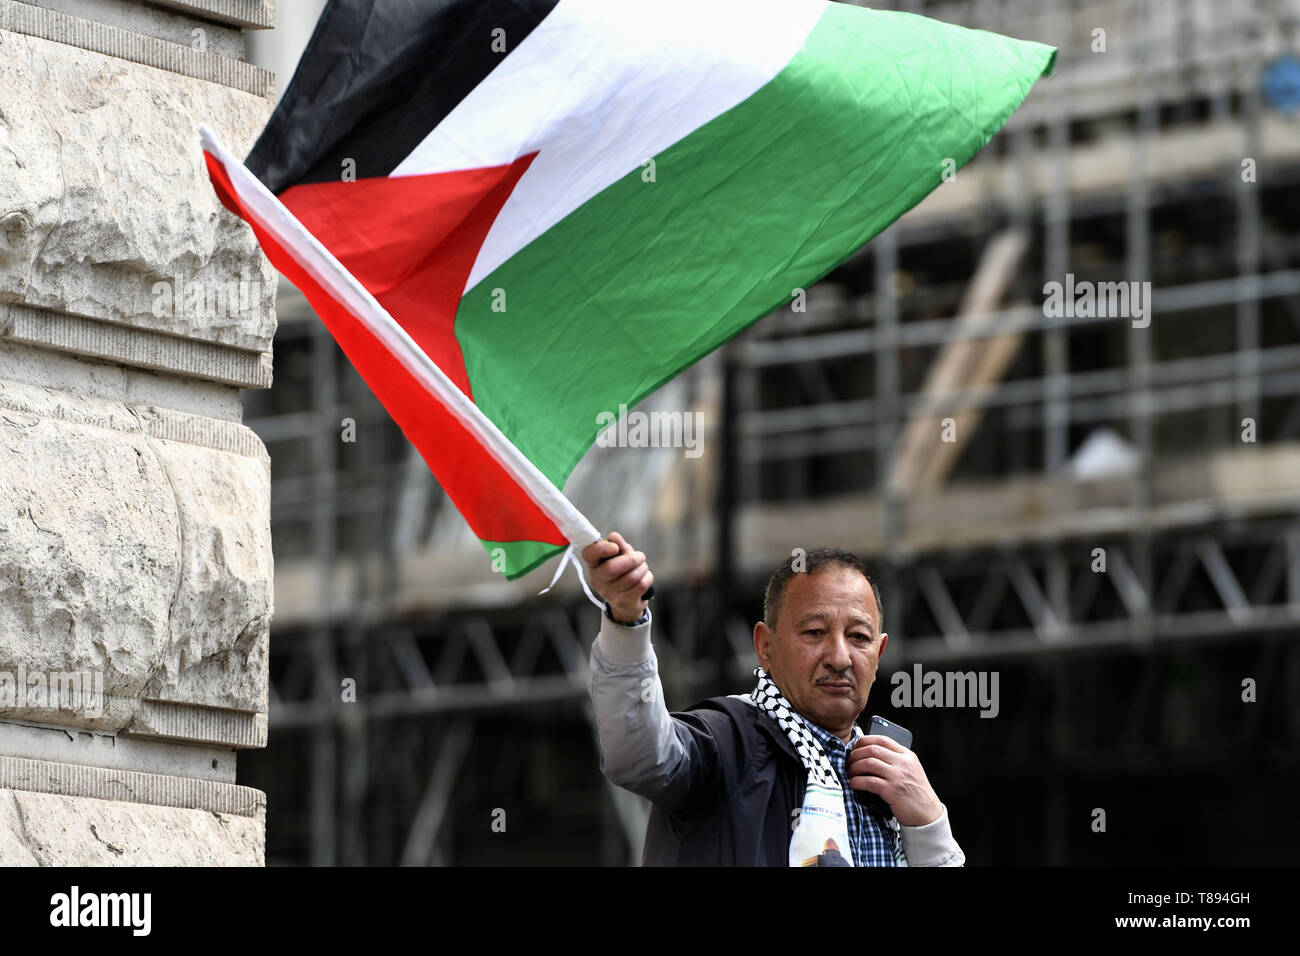 London, Greater London, UK. 11th May, 2019. A protester is seen holding a Palestinian flag during the demonstration.Palestinian human rights activist Ahed Tamimi joined the National demo for Palestine. Protesters gathered at Portland Place and marched to Whitehall in London, joining a global demonstration to show solidarity for Palestinian citizens and also to demand respect for the Palestinians rights and defend the rights to return to their territory. Credit: Andres Pantoja/SOPA Images/ZUMA Wire/Alamy Live News Stock Photo